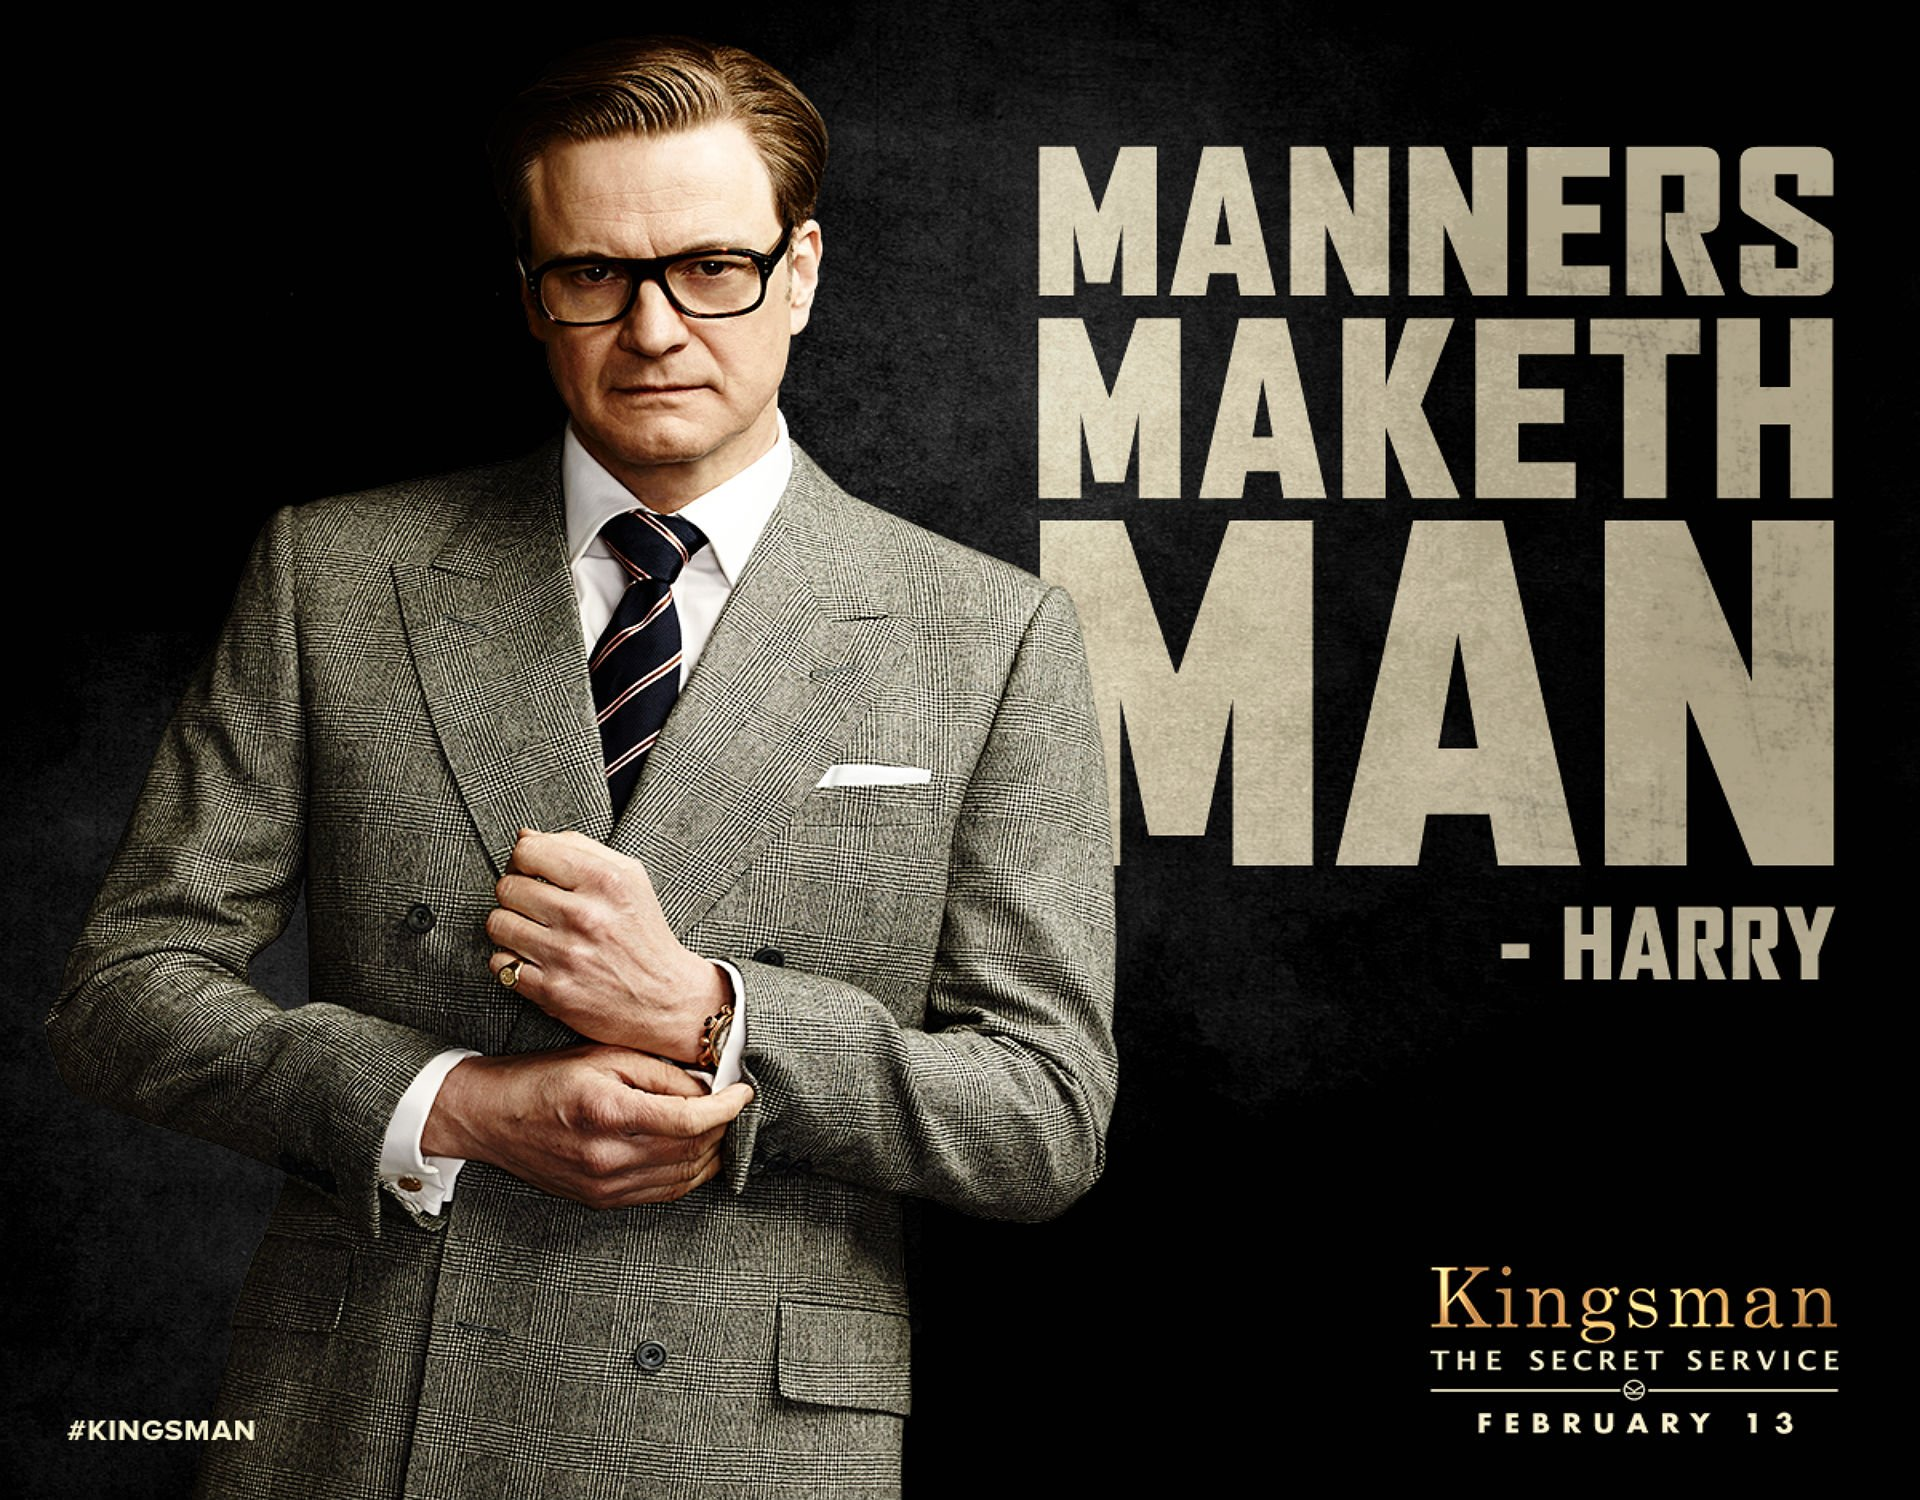 http://www.loritwichell.com/wp-content/uploads/2015/06/kingsman-the-secret-service-images-hd.jpg